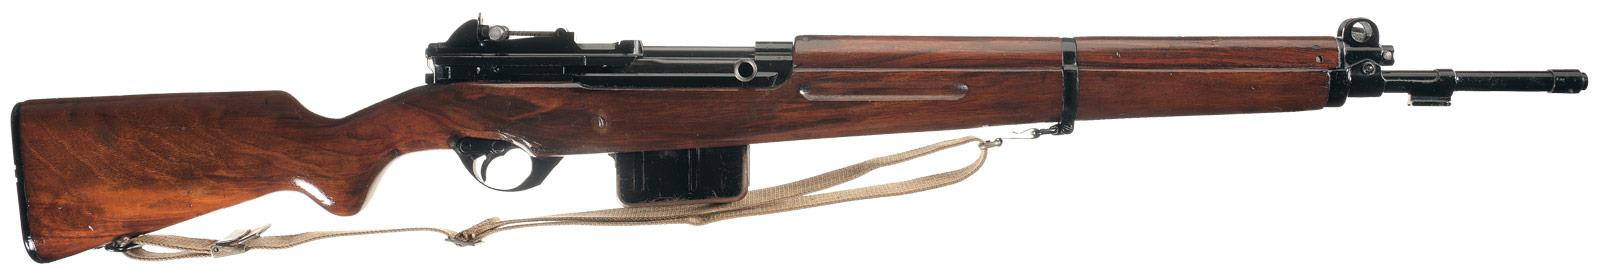 Excellent Luxembourg Contract FN49 Semi-Automatic Rifle